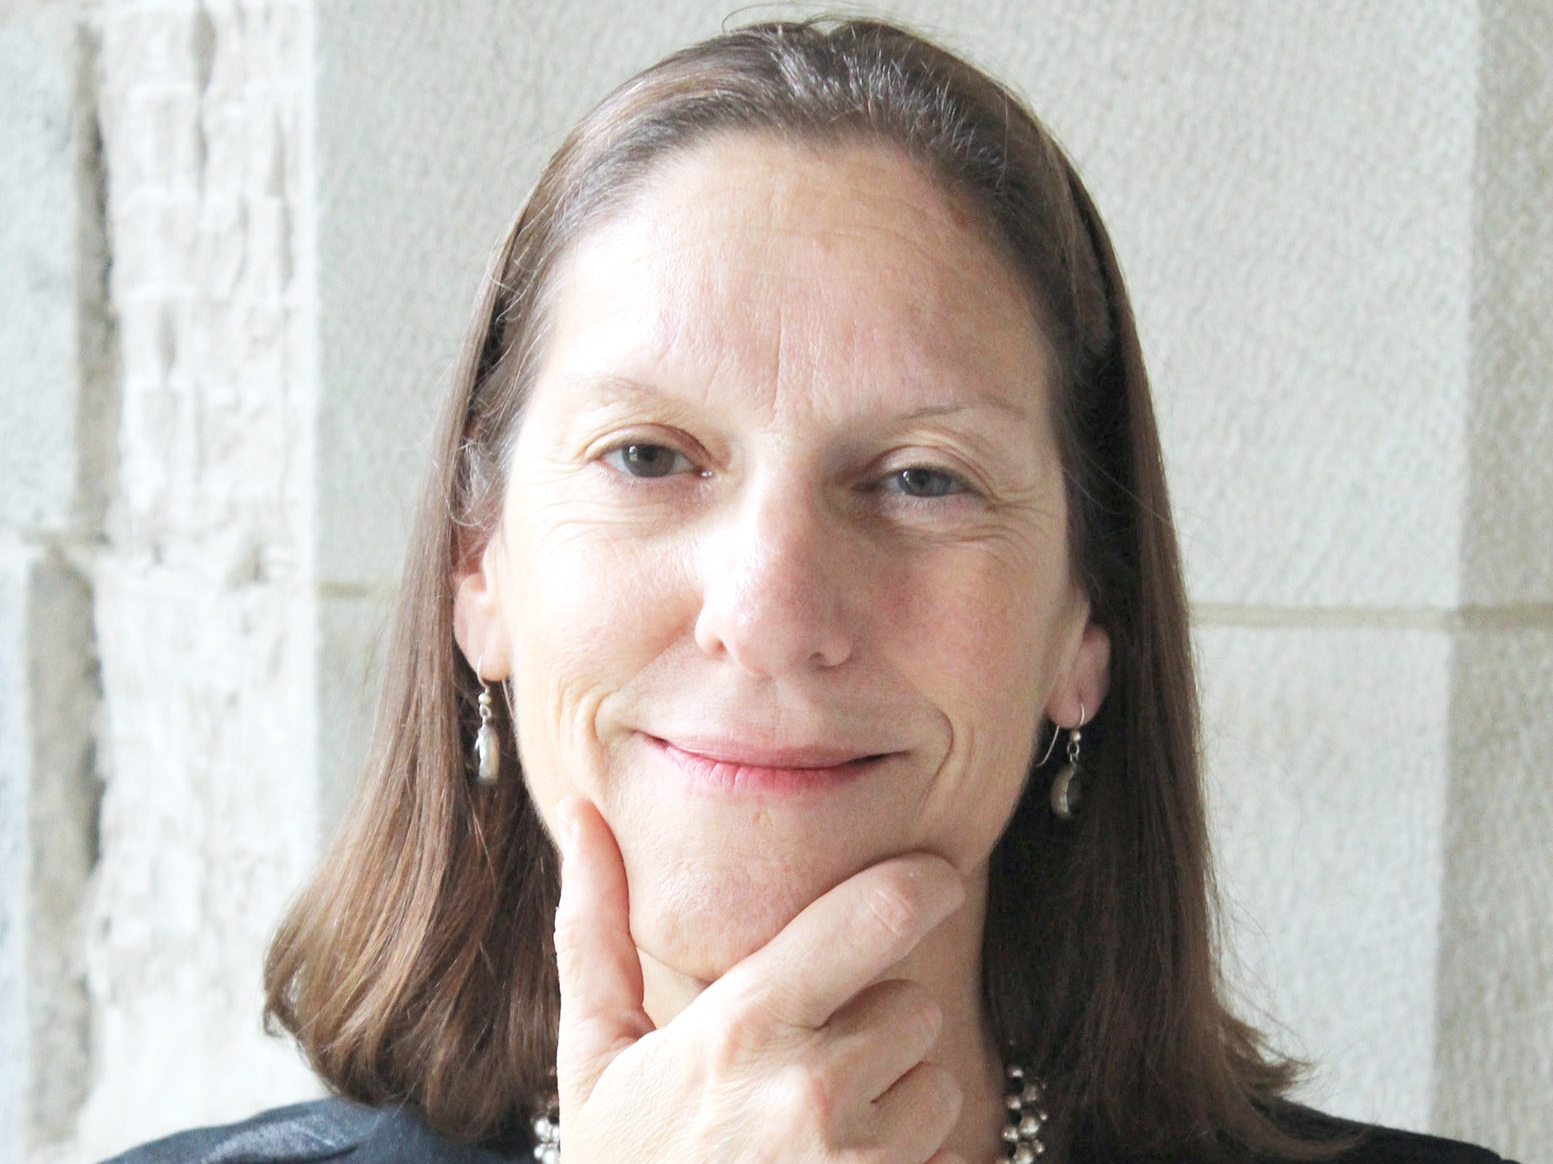 Professor of History, New York University   Swarthmore    Martha Hodes is currently writing a book exploring history and memory through a 1970 airplane hijacking.